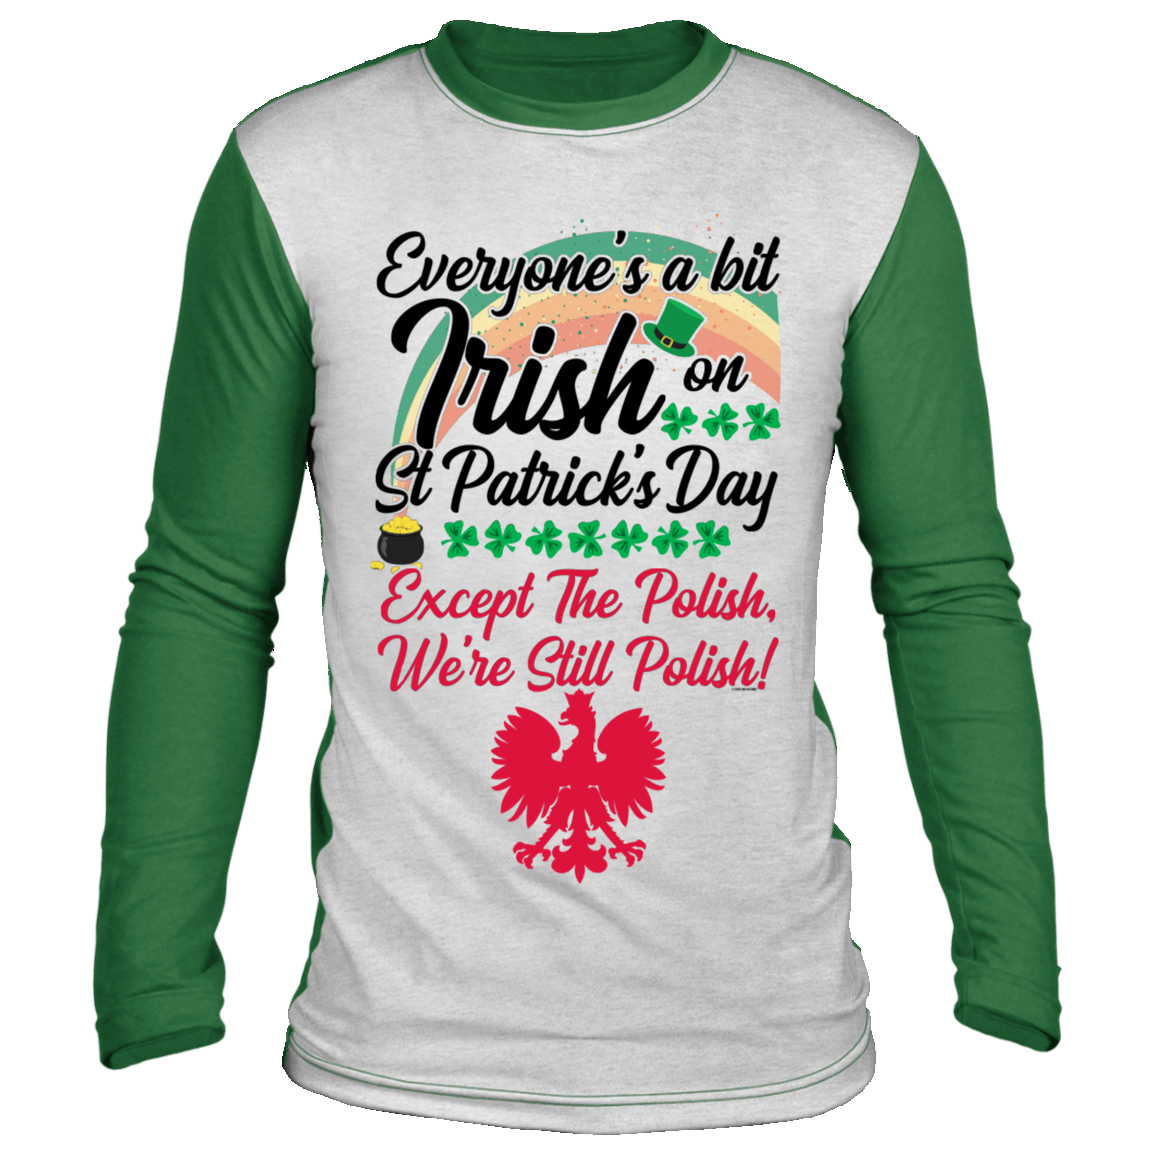 Everyone's Irish On St Patricks Day Except The Polish - White/Green / S - Polish Shirt Store